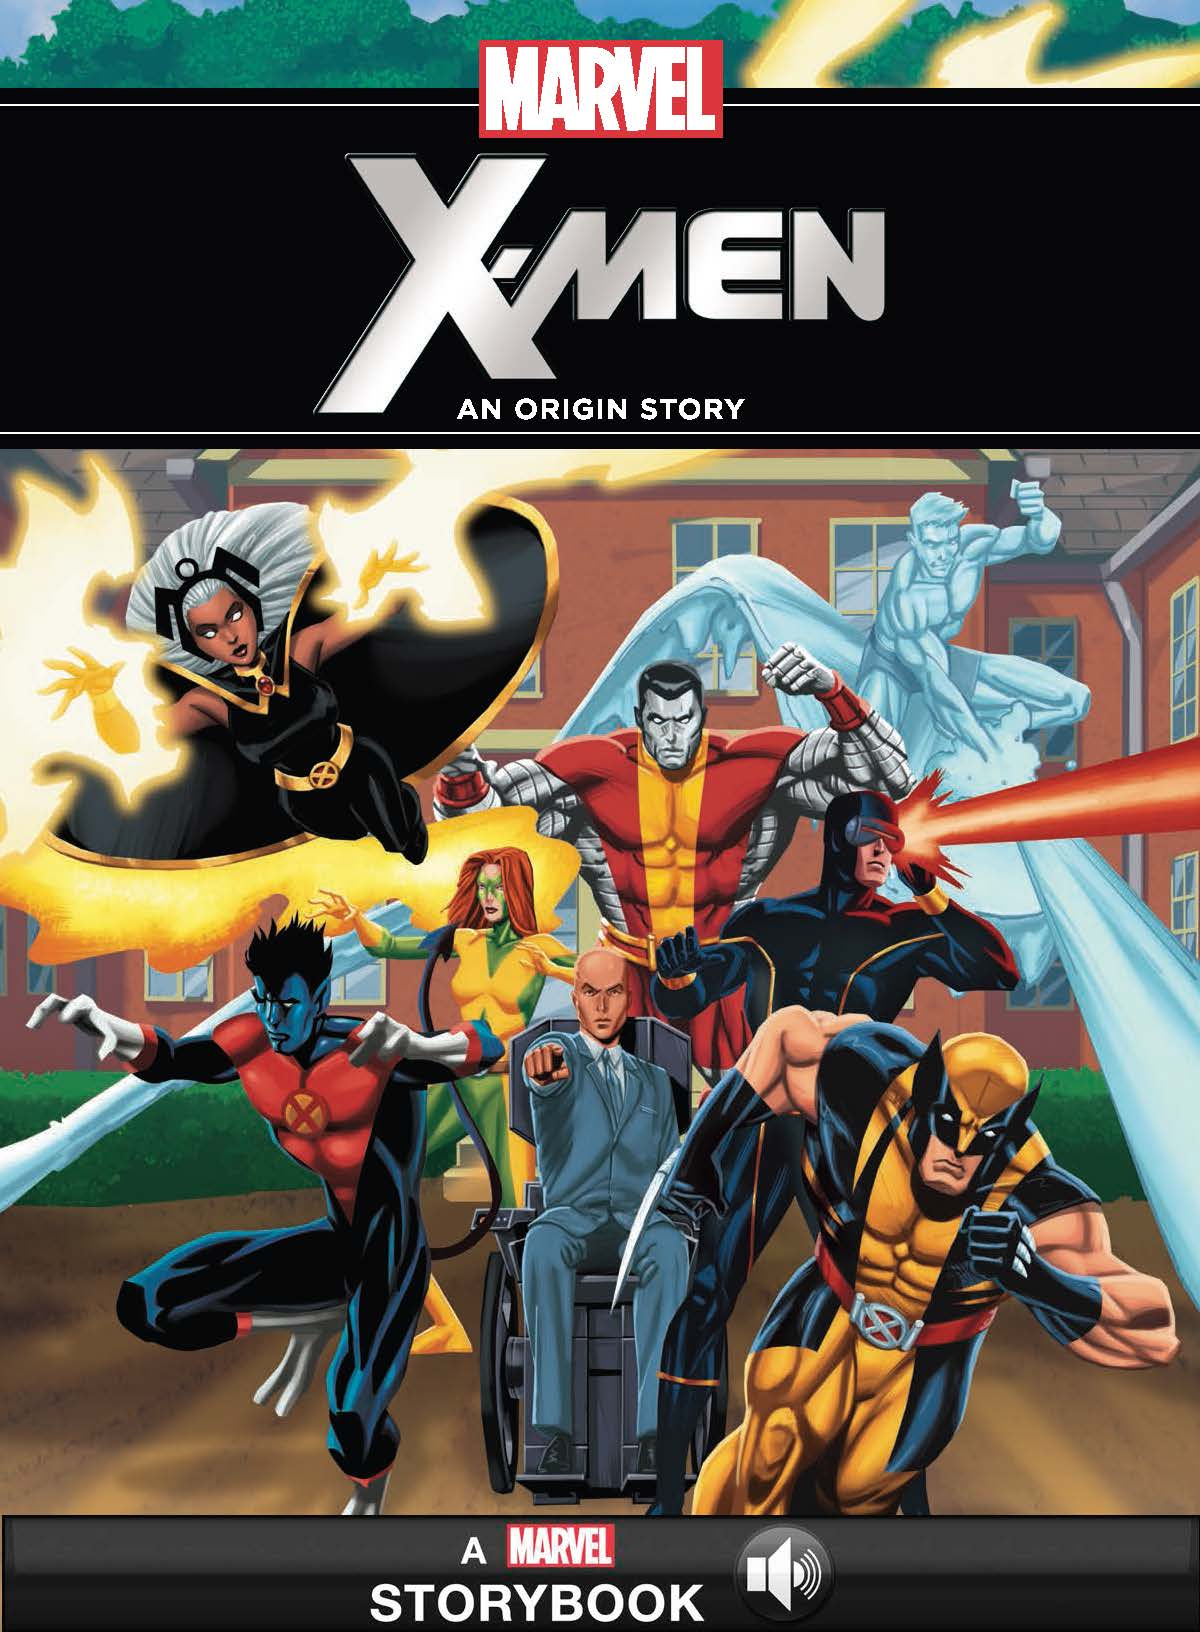 Marvel:  The X-Men: An Origin Story